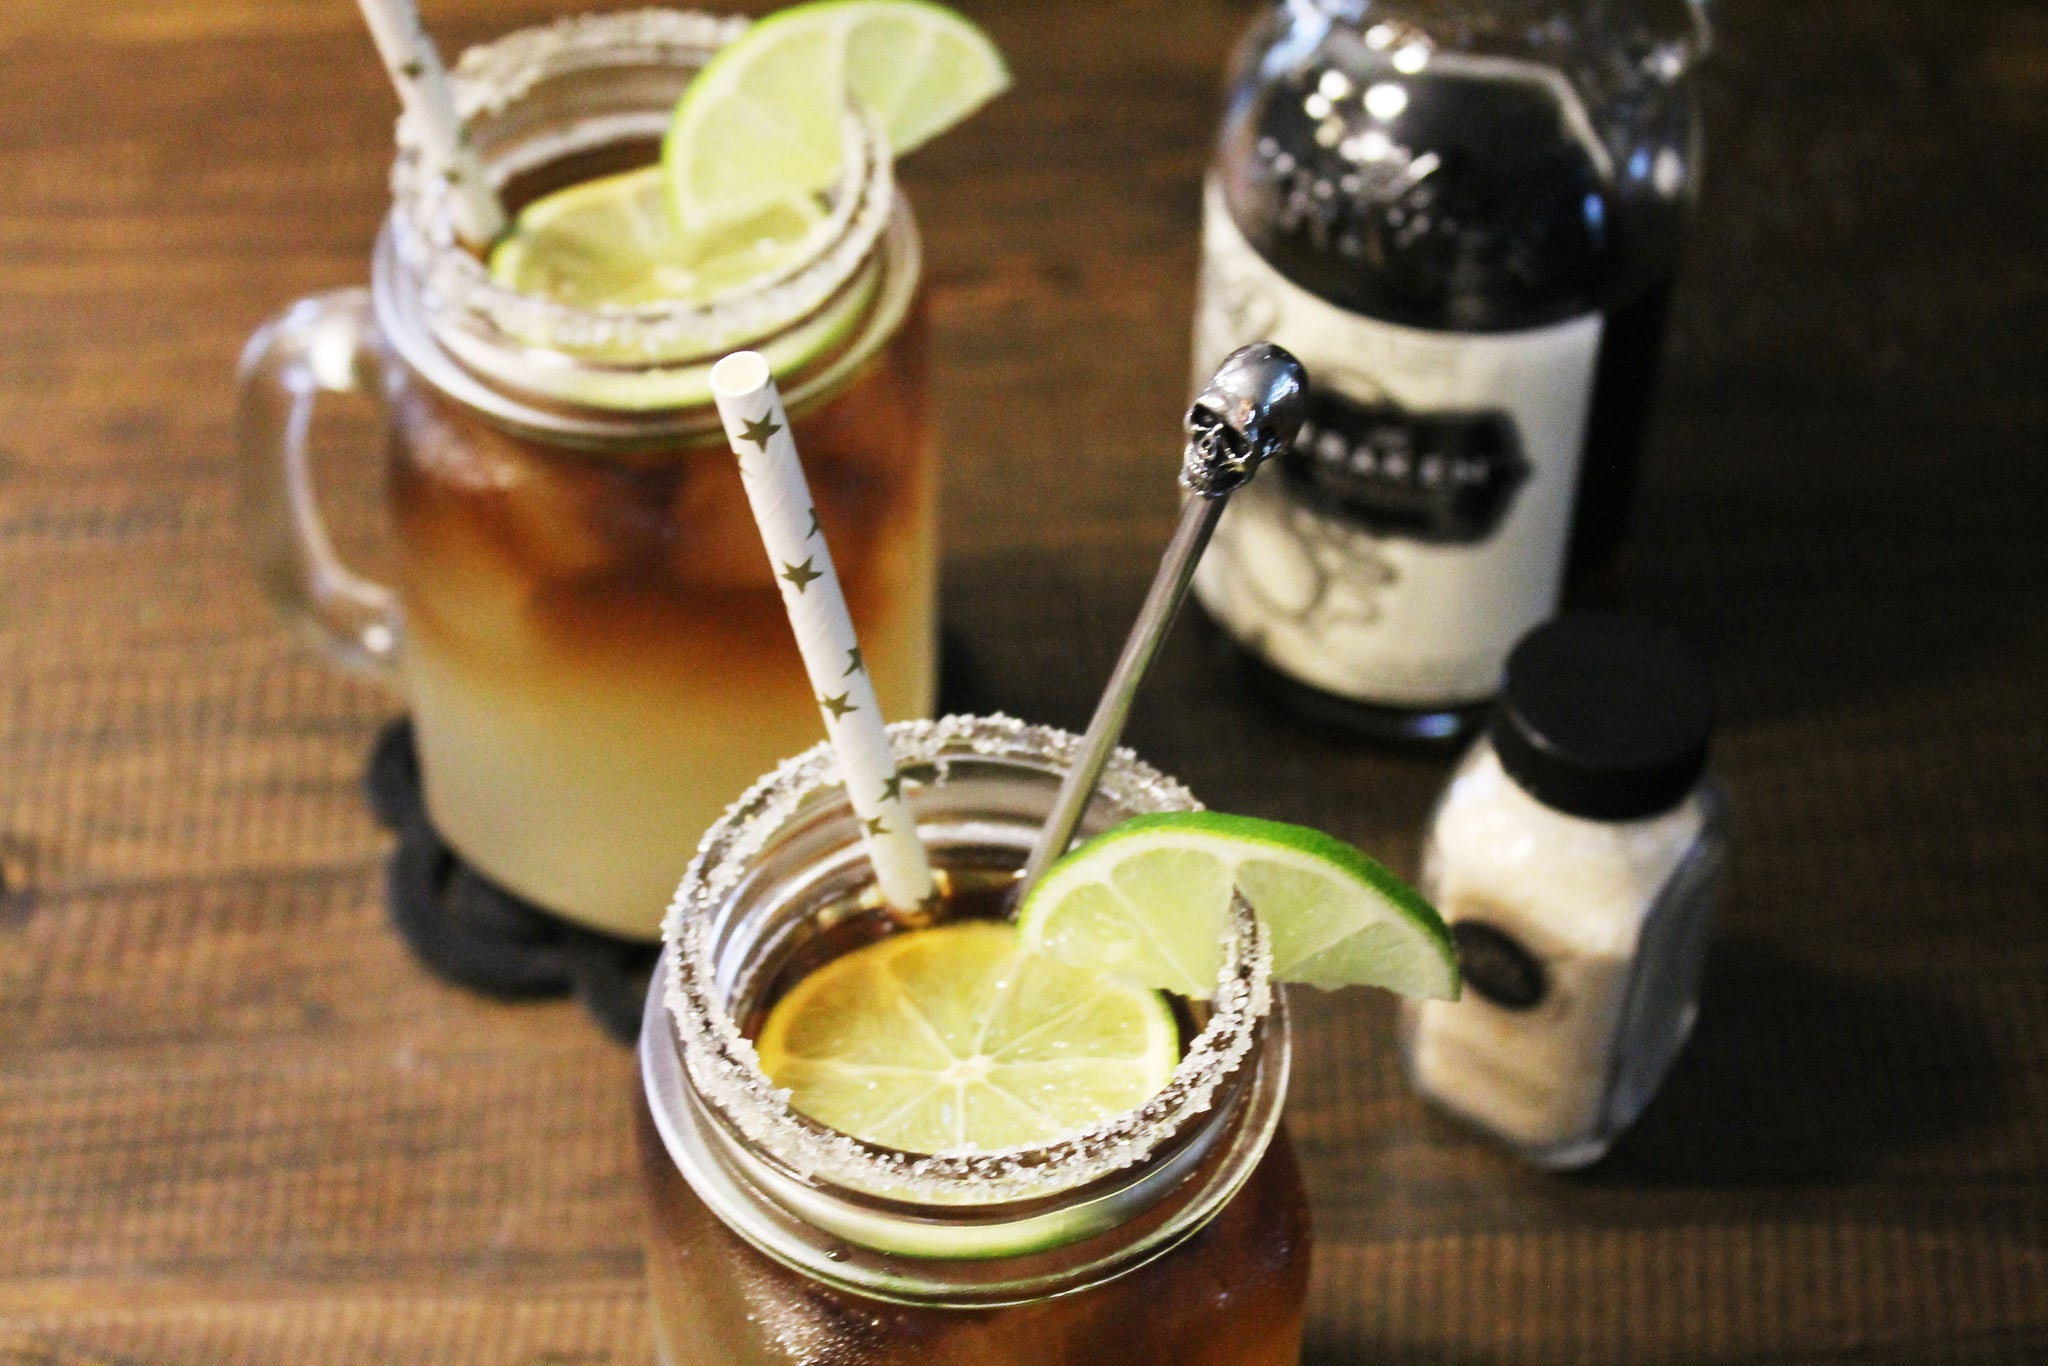 salty paloma kraken dark and stormy cocktail recipe